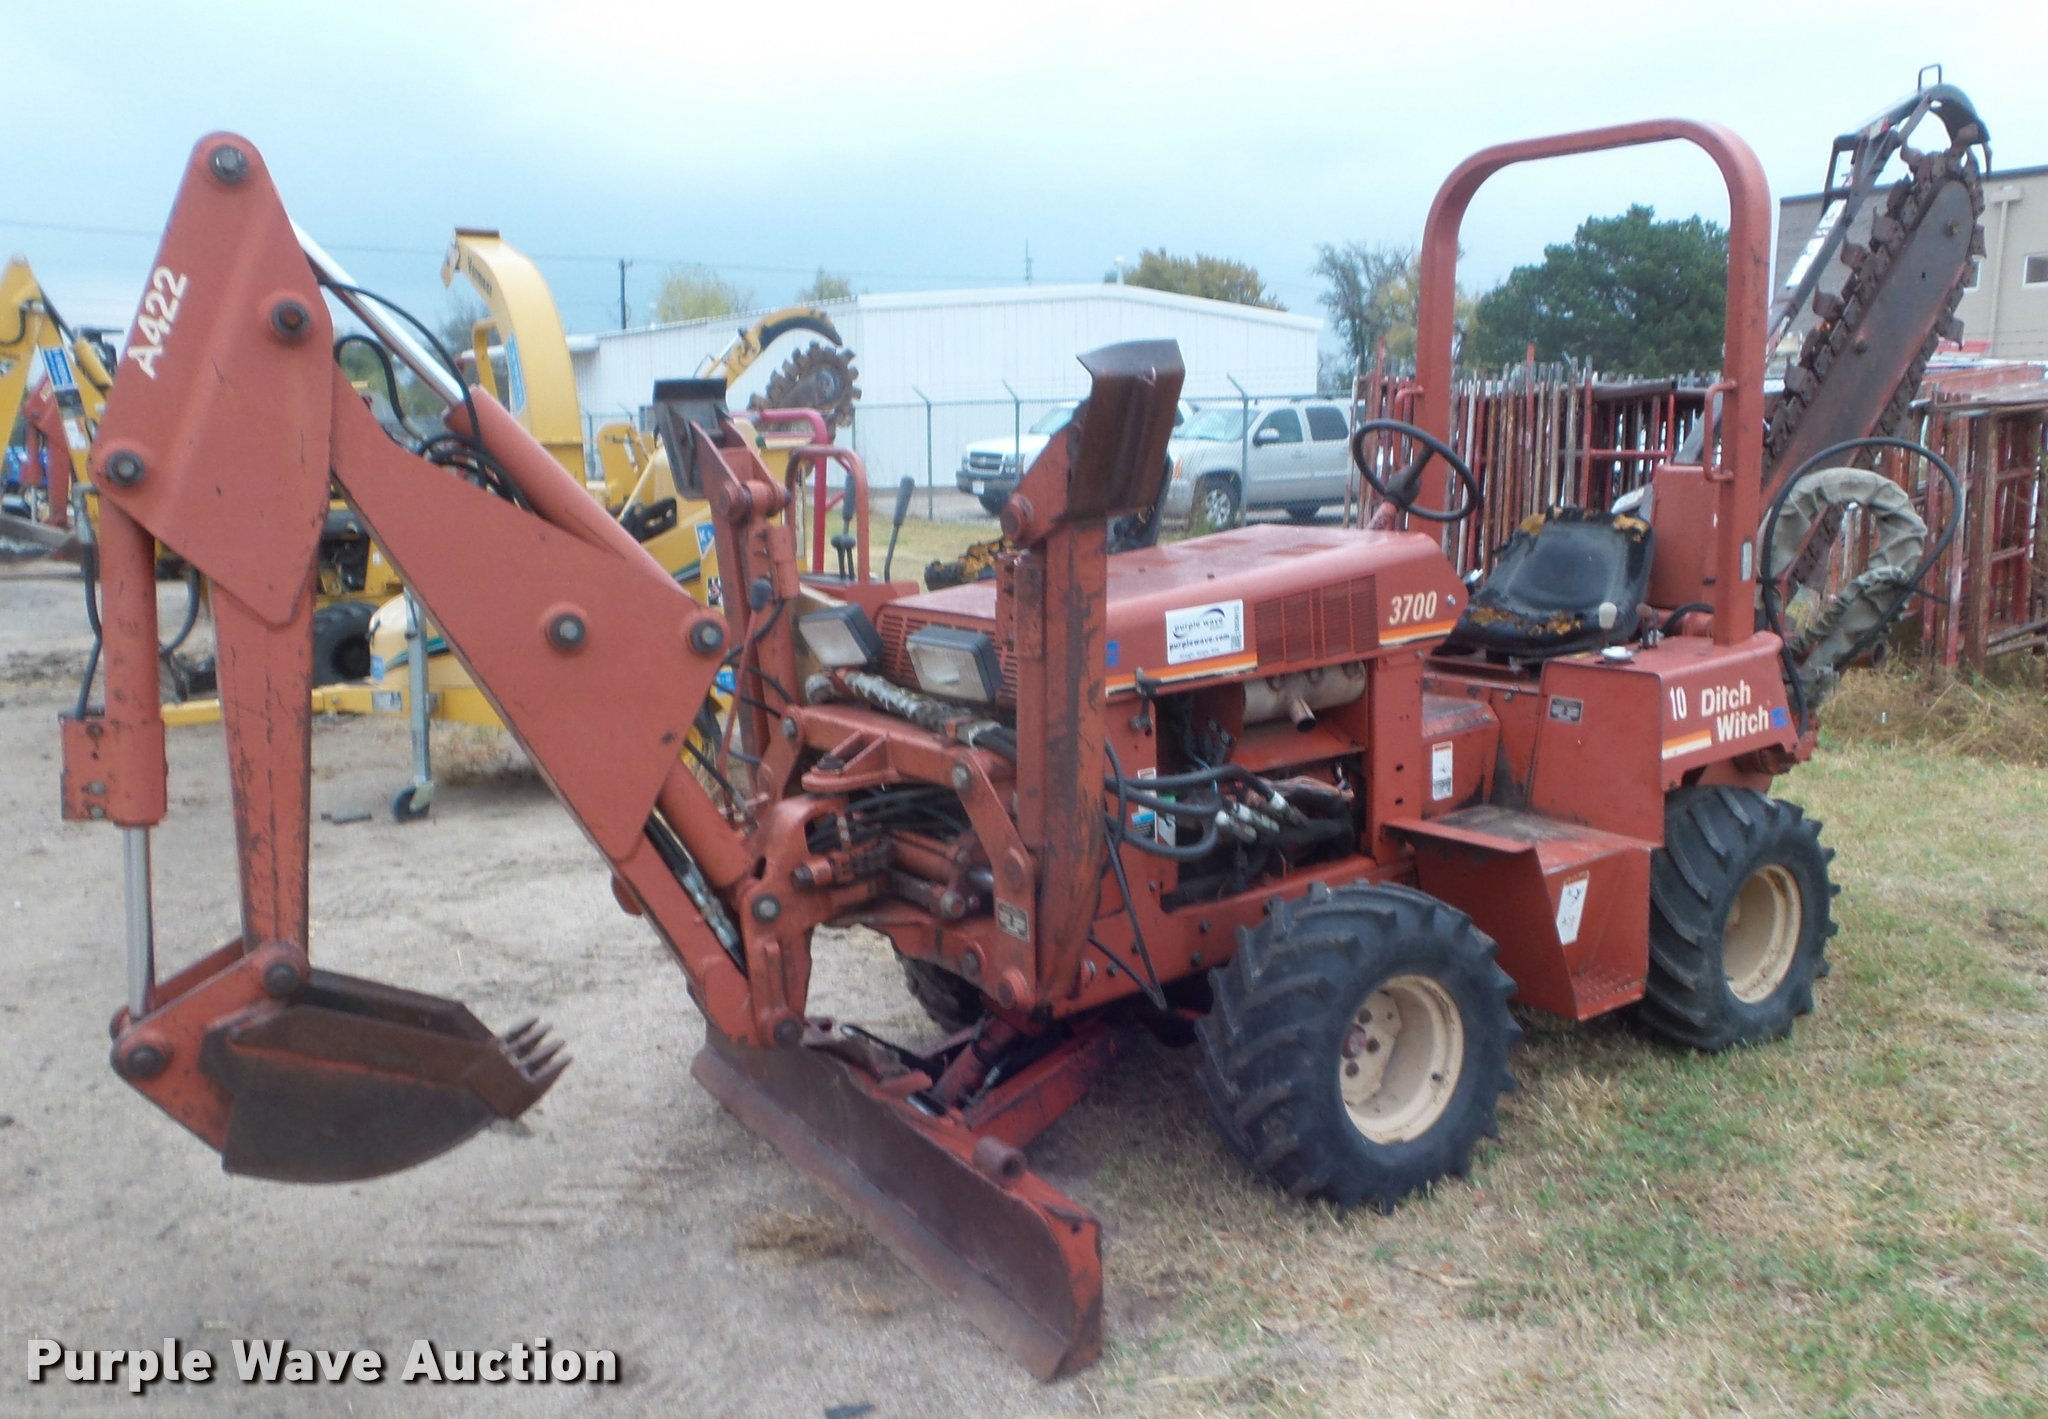 Ditch witch 3700 service manual open source user manual ditch witch 3700 trencher item db3613 sold december 13 rh purplewave com ditch witch 1230 parts fandeluxe Images